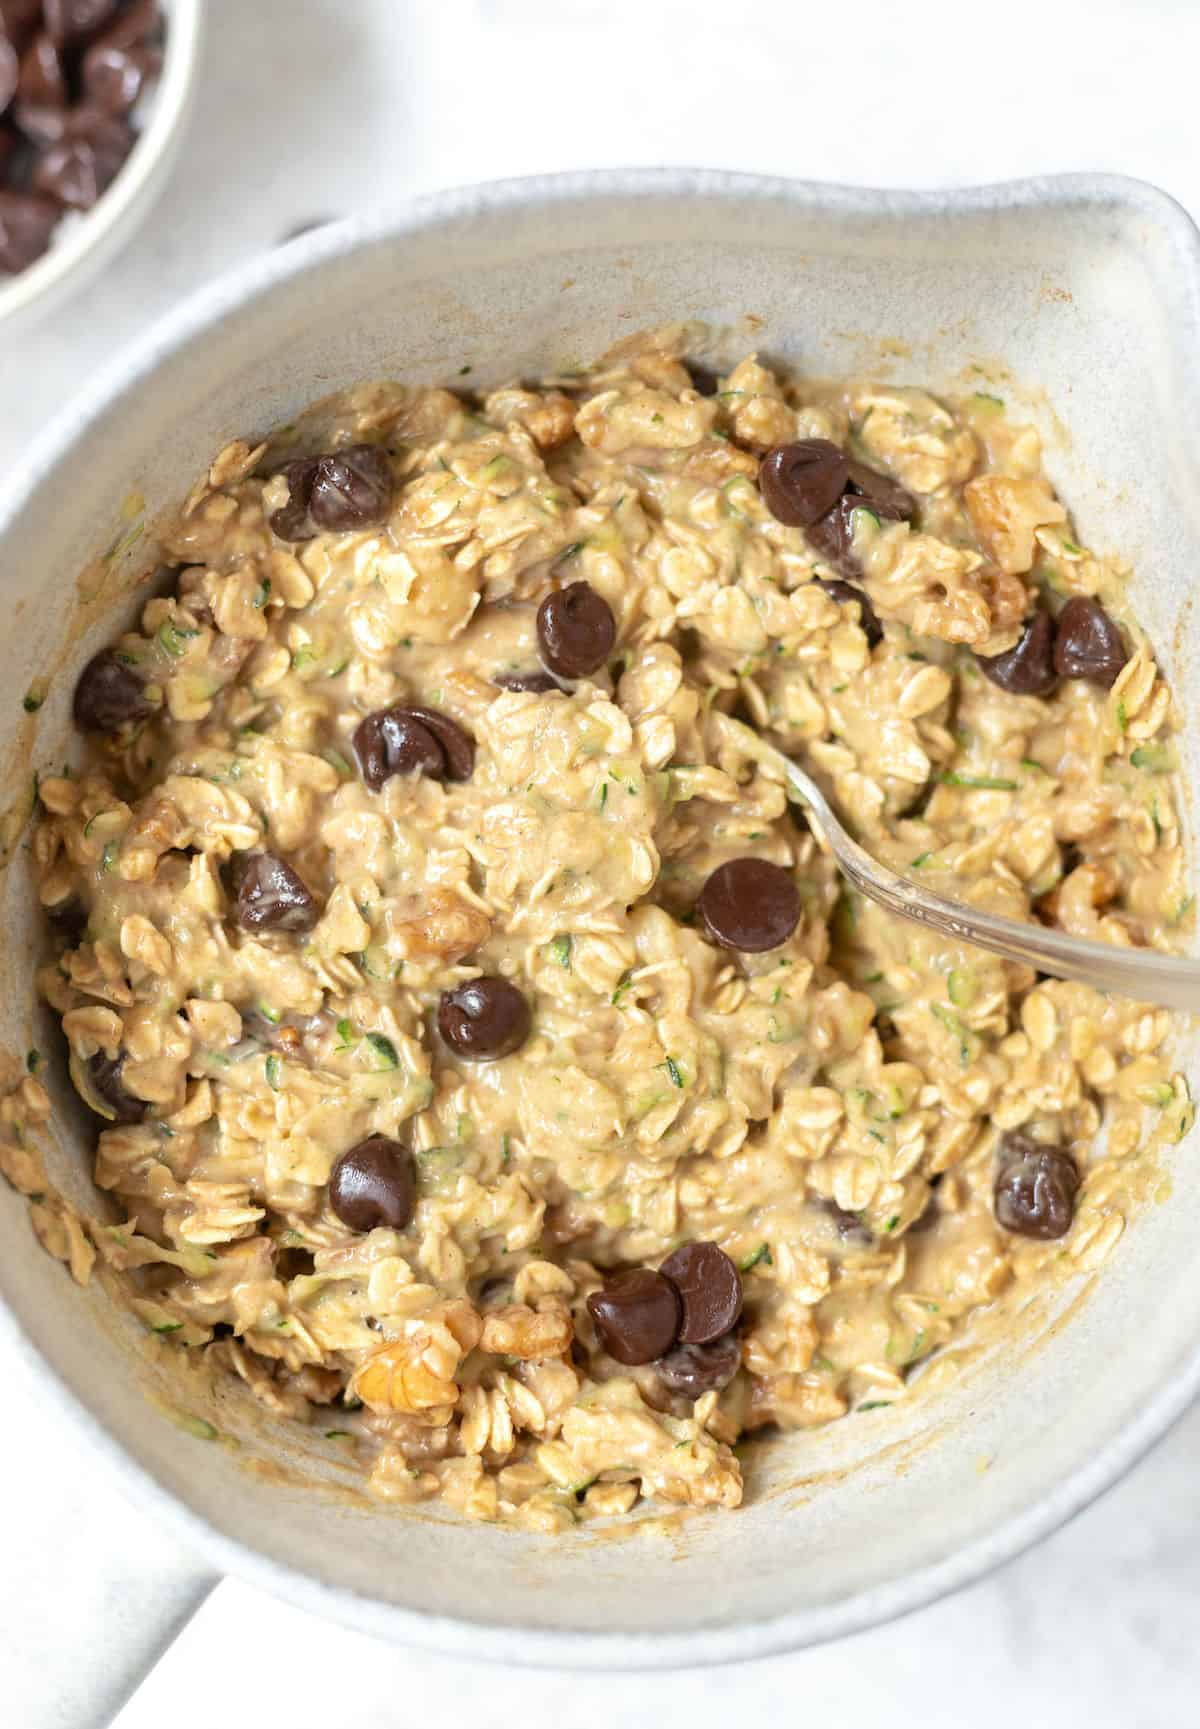 bowl of oatmeal ingredients